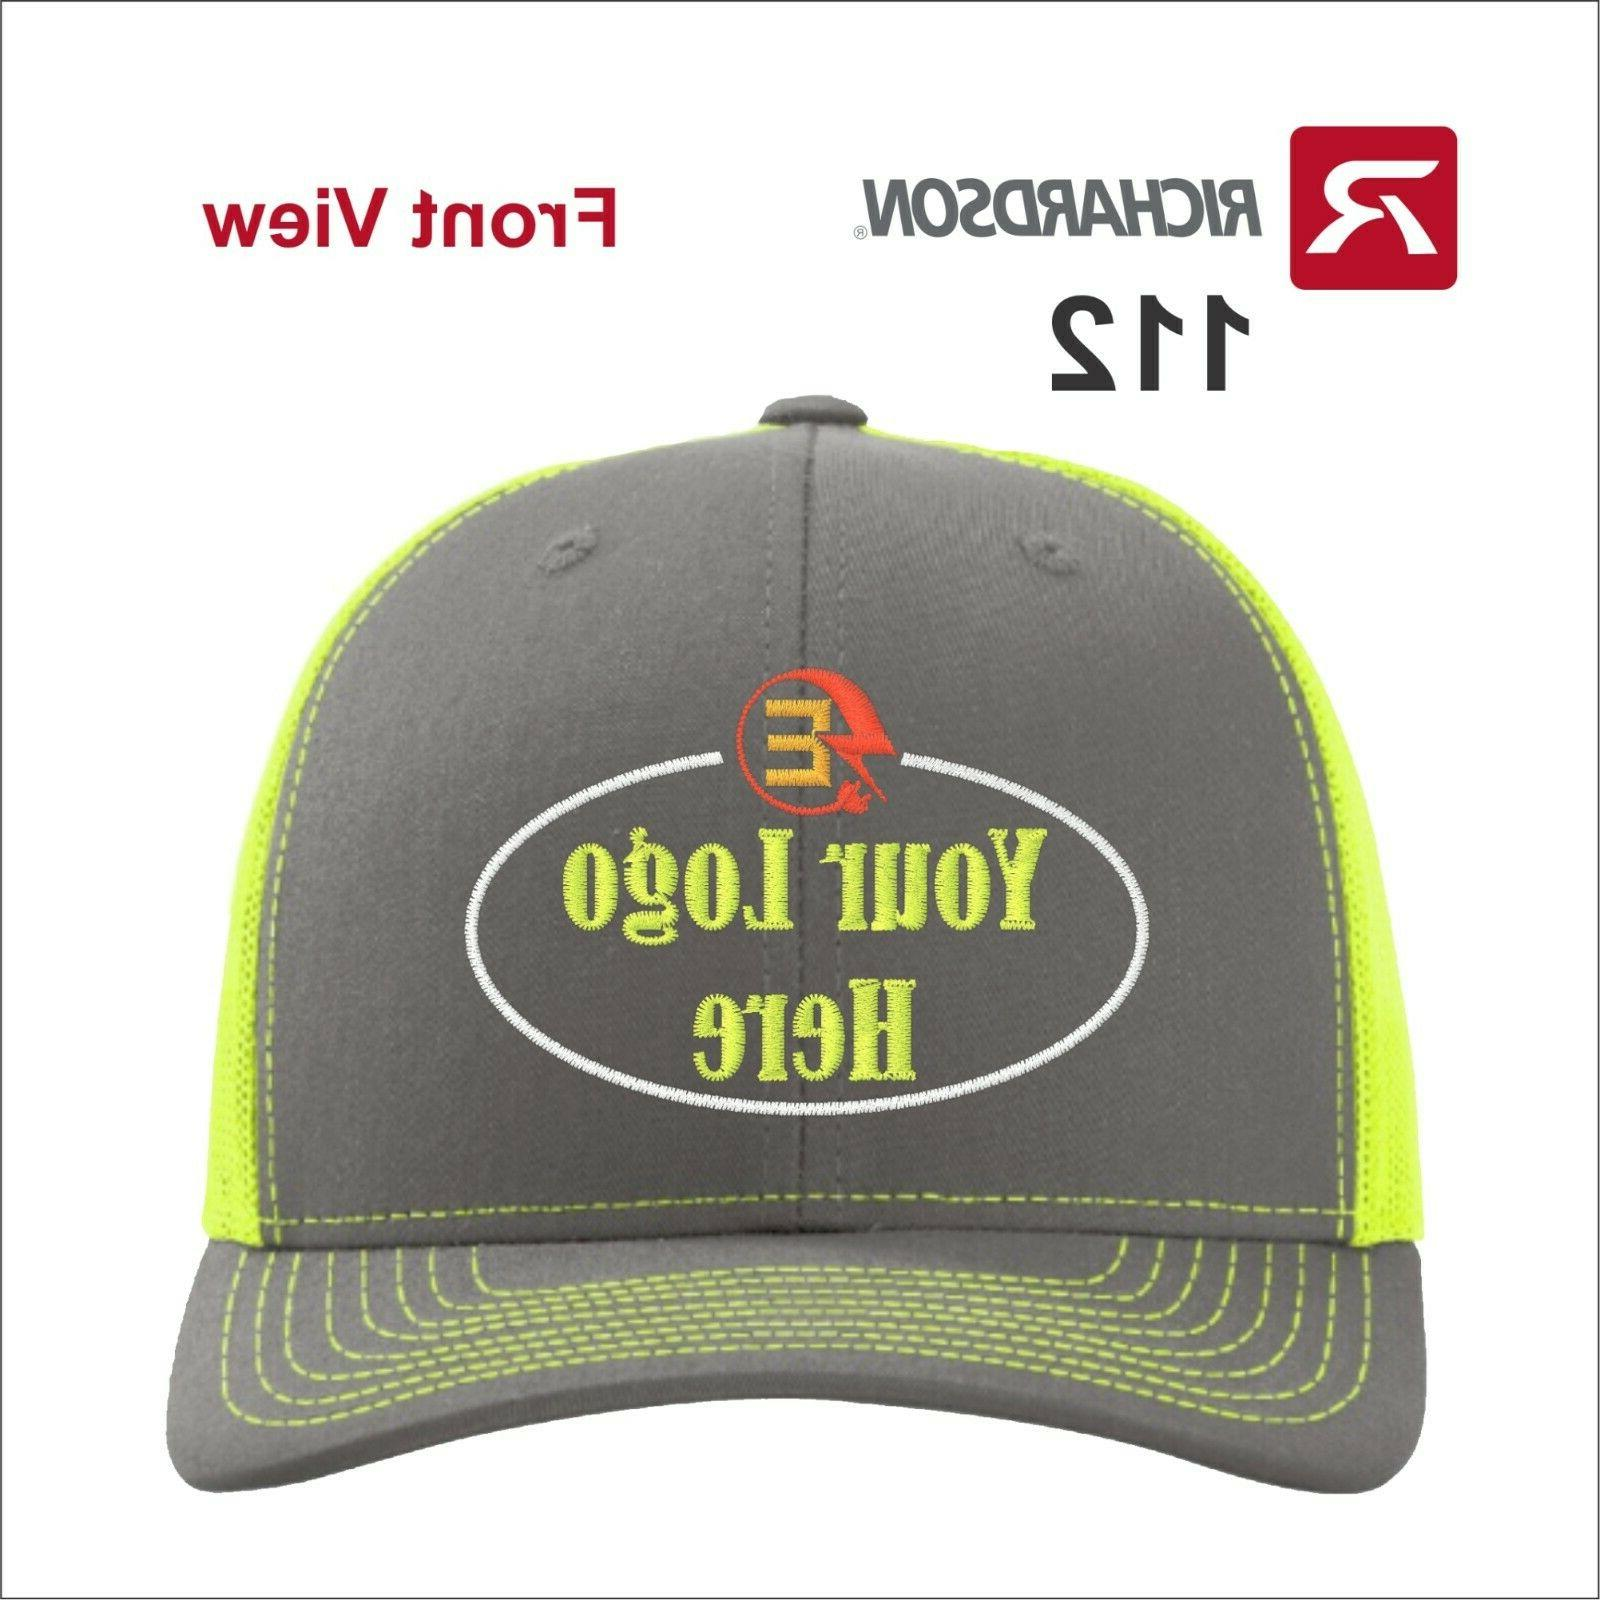 112 customized embroidered hats with your text